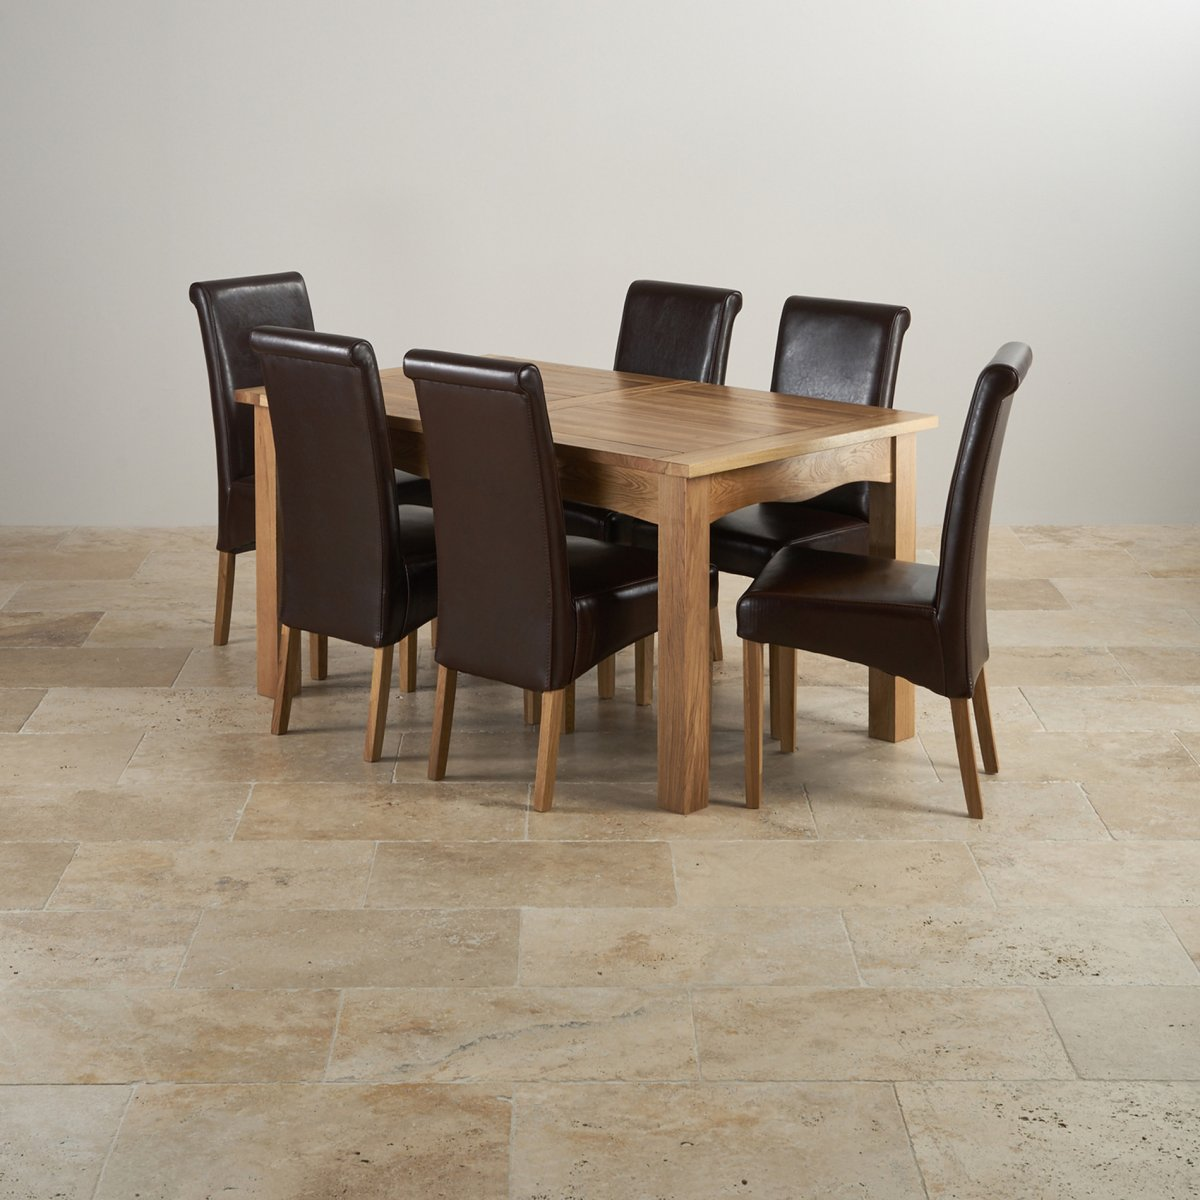 Provence Natural Solid Oak Dining Set: Cairo Extending Dining Set In Oak: Table + 6 Leather Chairs